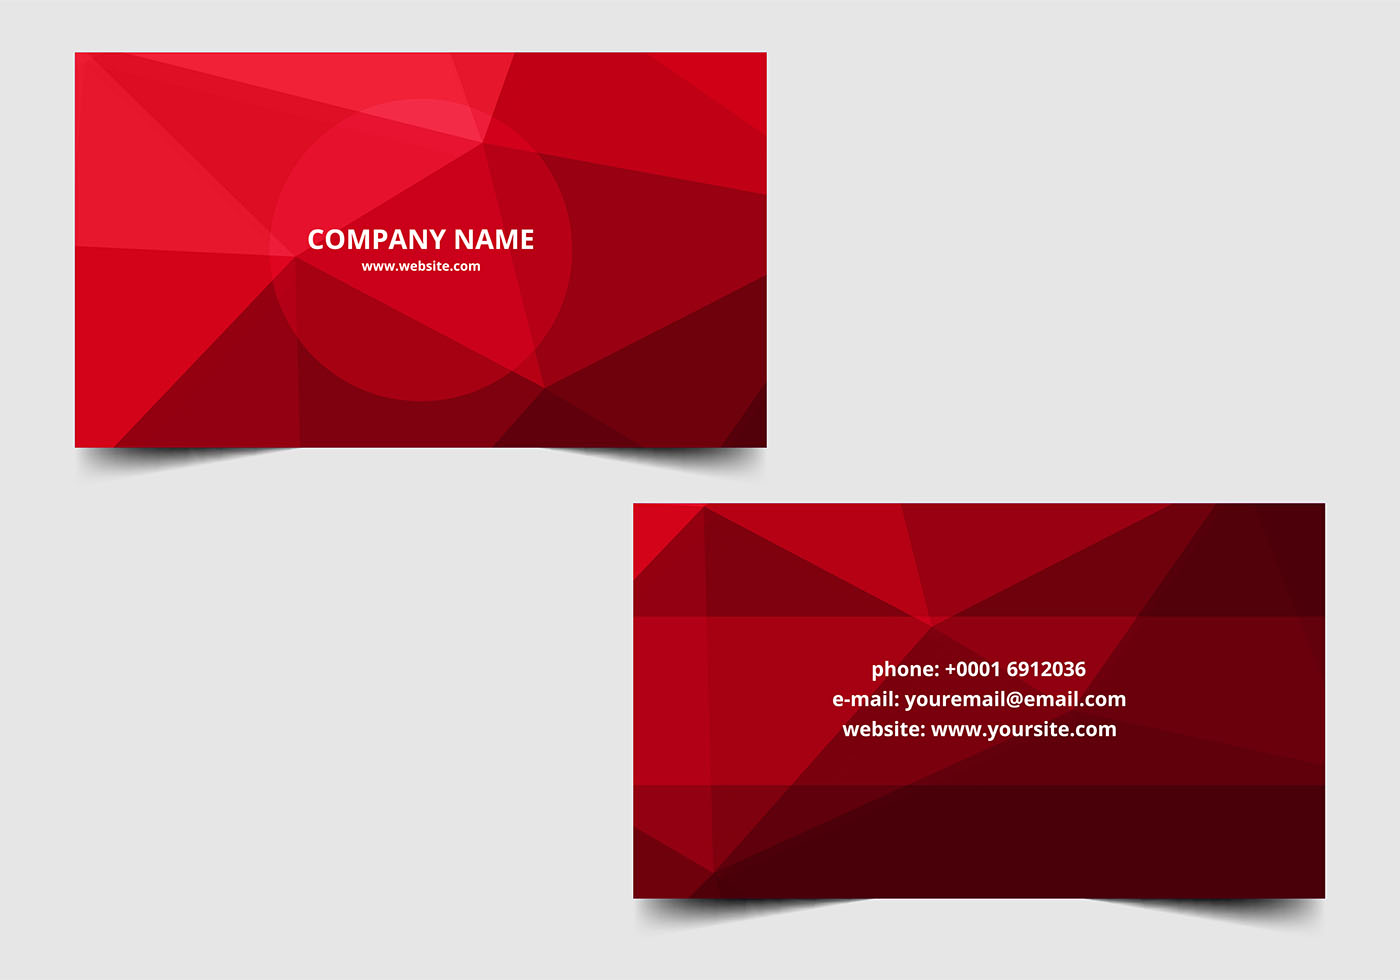 Free vector polygon business card download free vector art stock graphics images for Vectors business cards